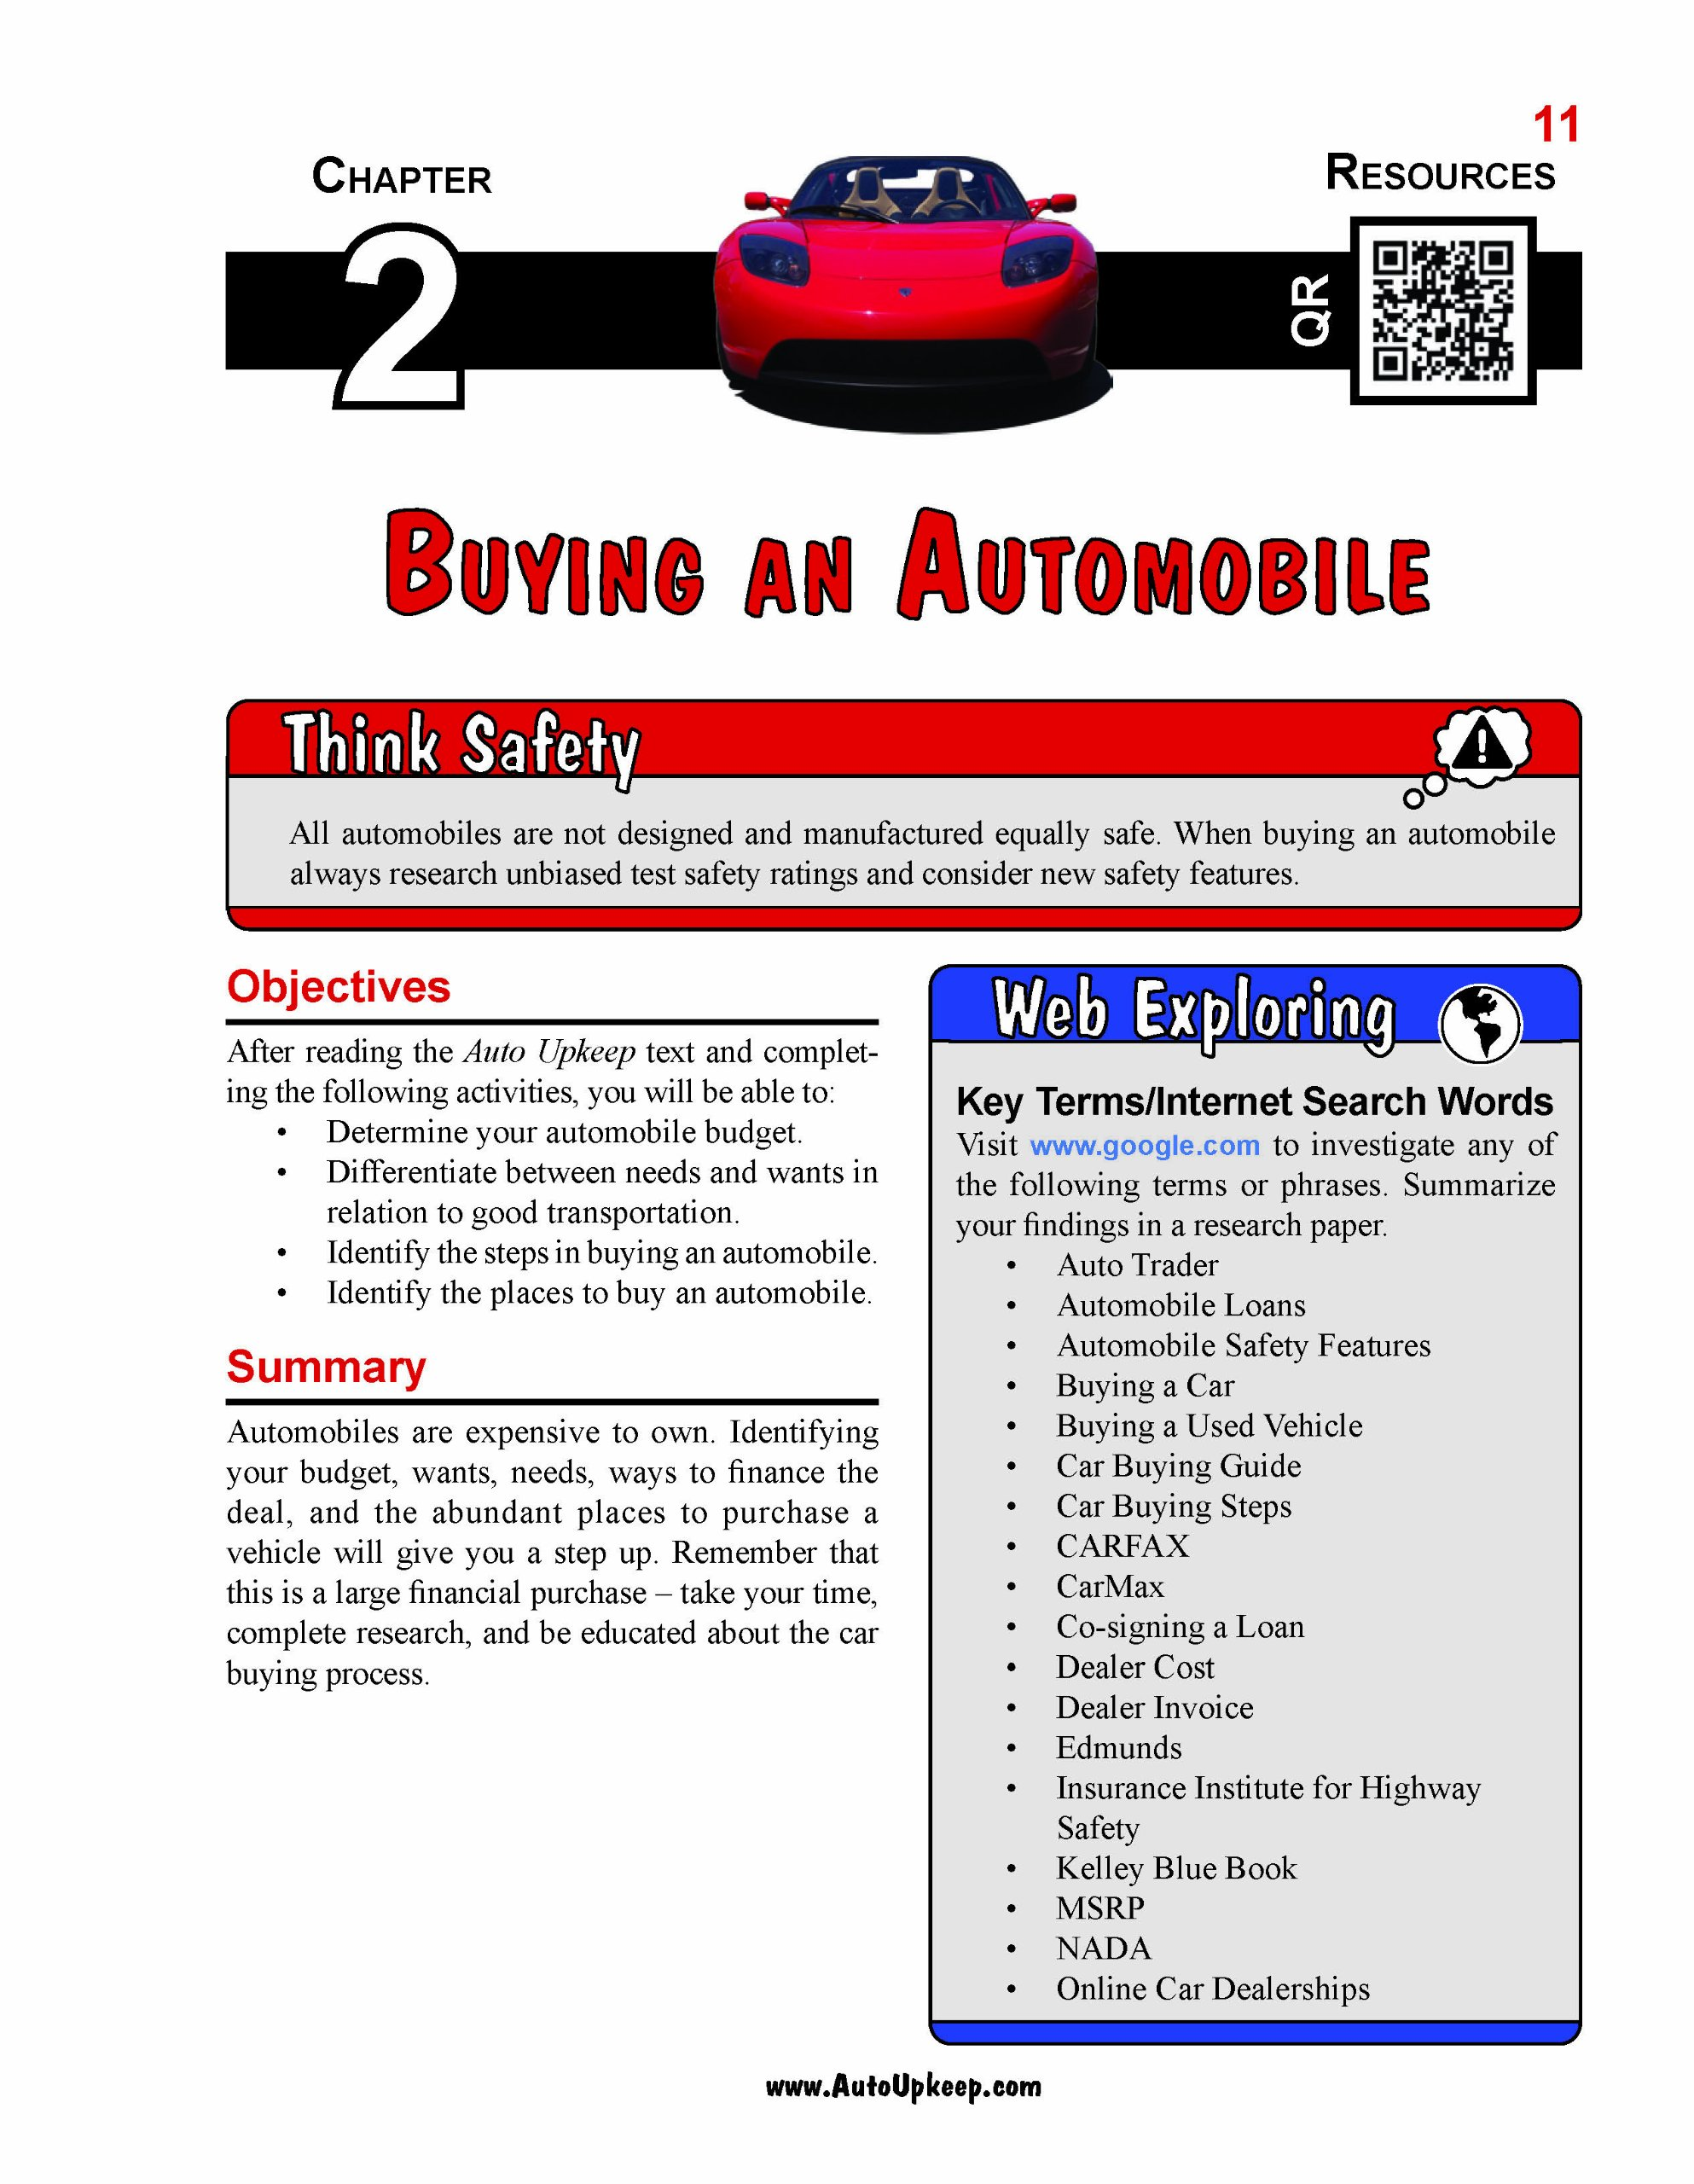 Free Printable Blank Invoice Forms Pdf Auto Upkeep Basic Car Care Maintenance And Repair Workbook  Invoice Approval Stamp Word with Toyota Sienna Invoice Price Auto Upkeep Basic Car Care Maintenance And Repair Workbook Michael E  Gray And Linda E Gray  Amazoncom Books Sunglass Hut Receipt Pdf